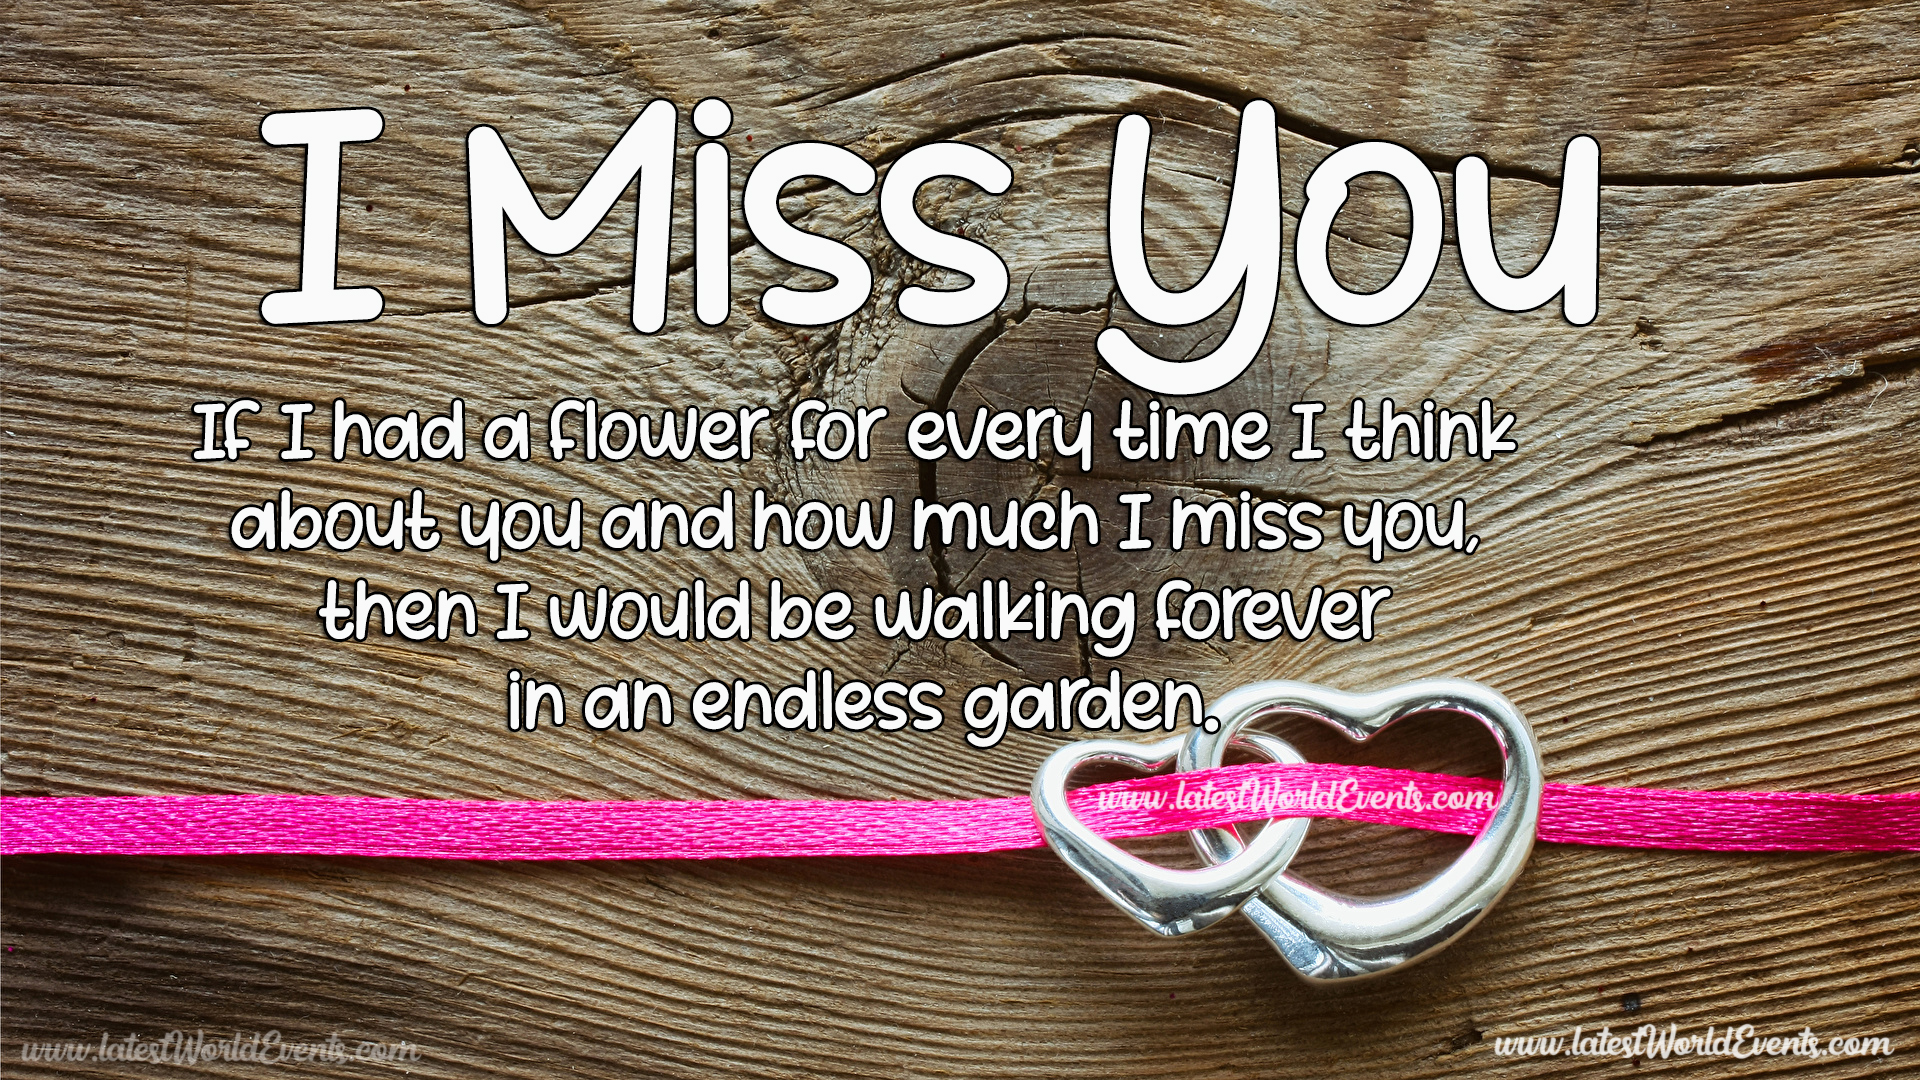 Cute I Miss You Quotes - Latest World Events Downloads